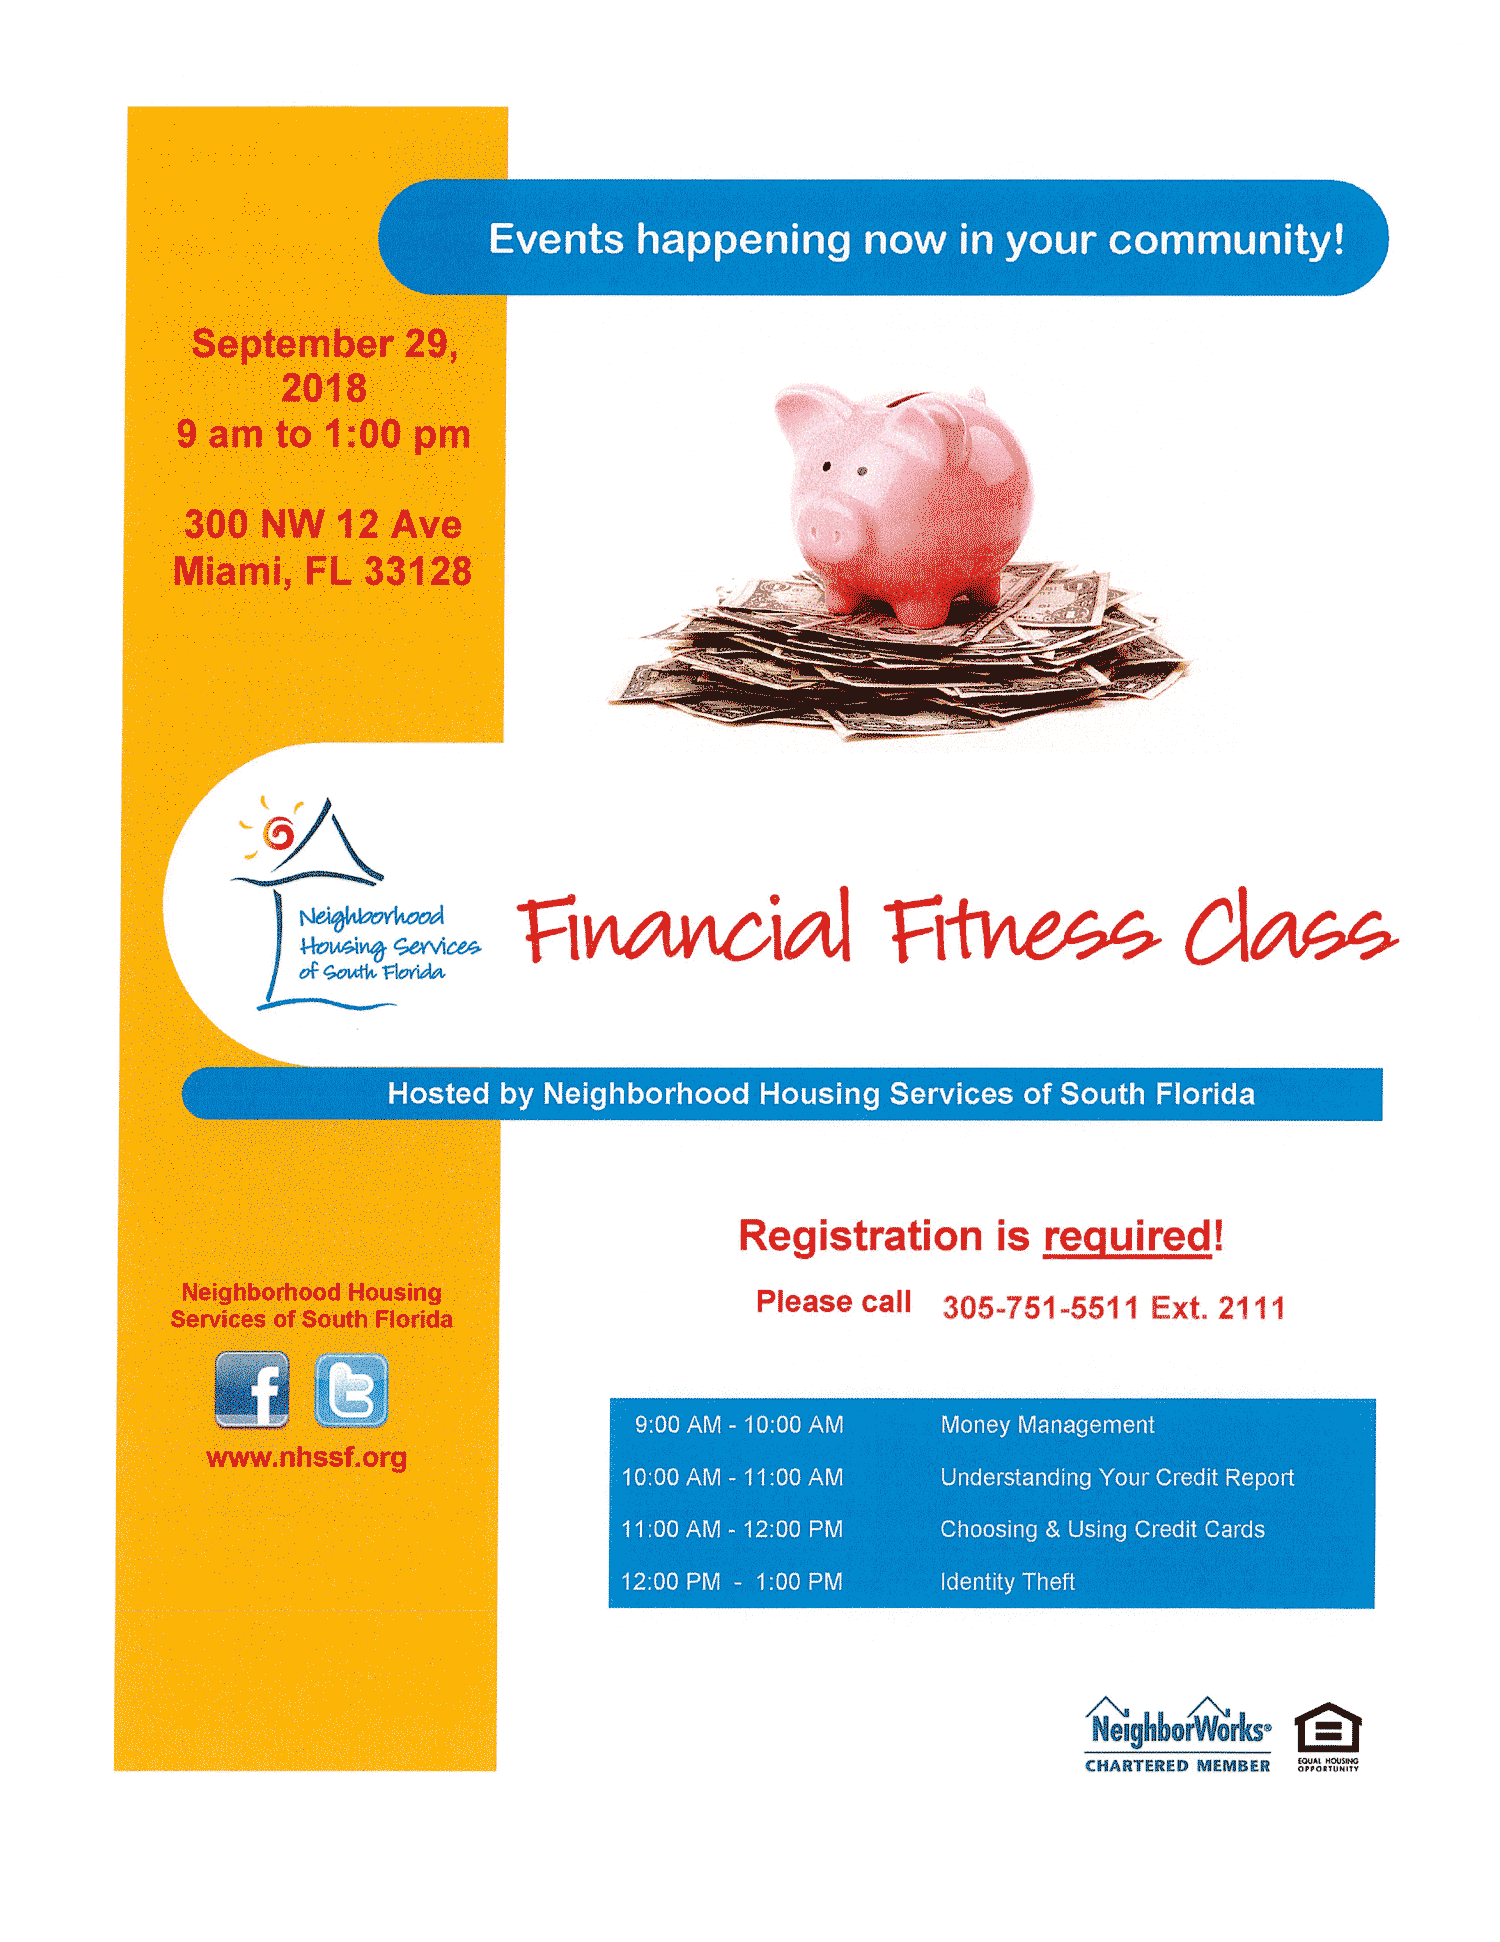 Flyer for Miami-Dade Financial Fitness Class held on September 29, 2018